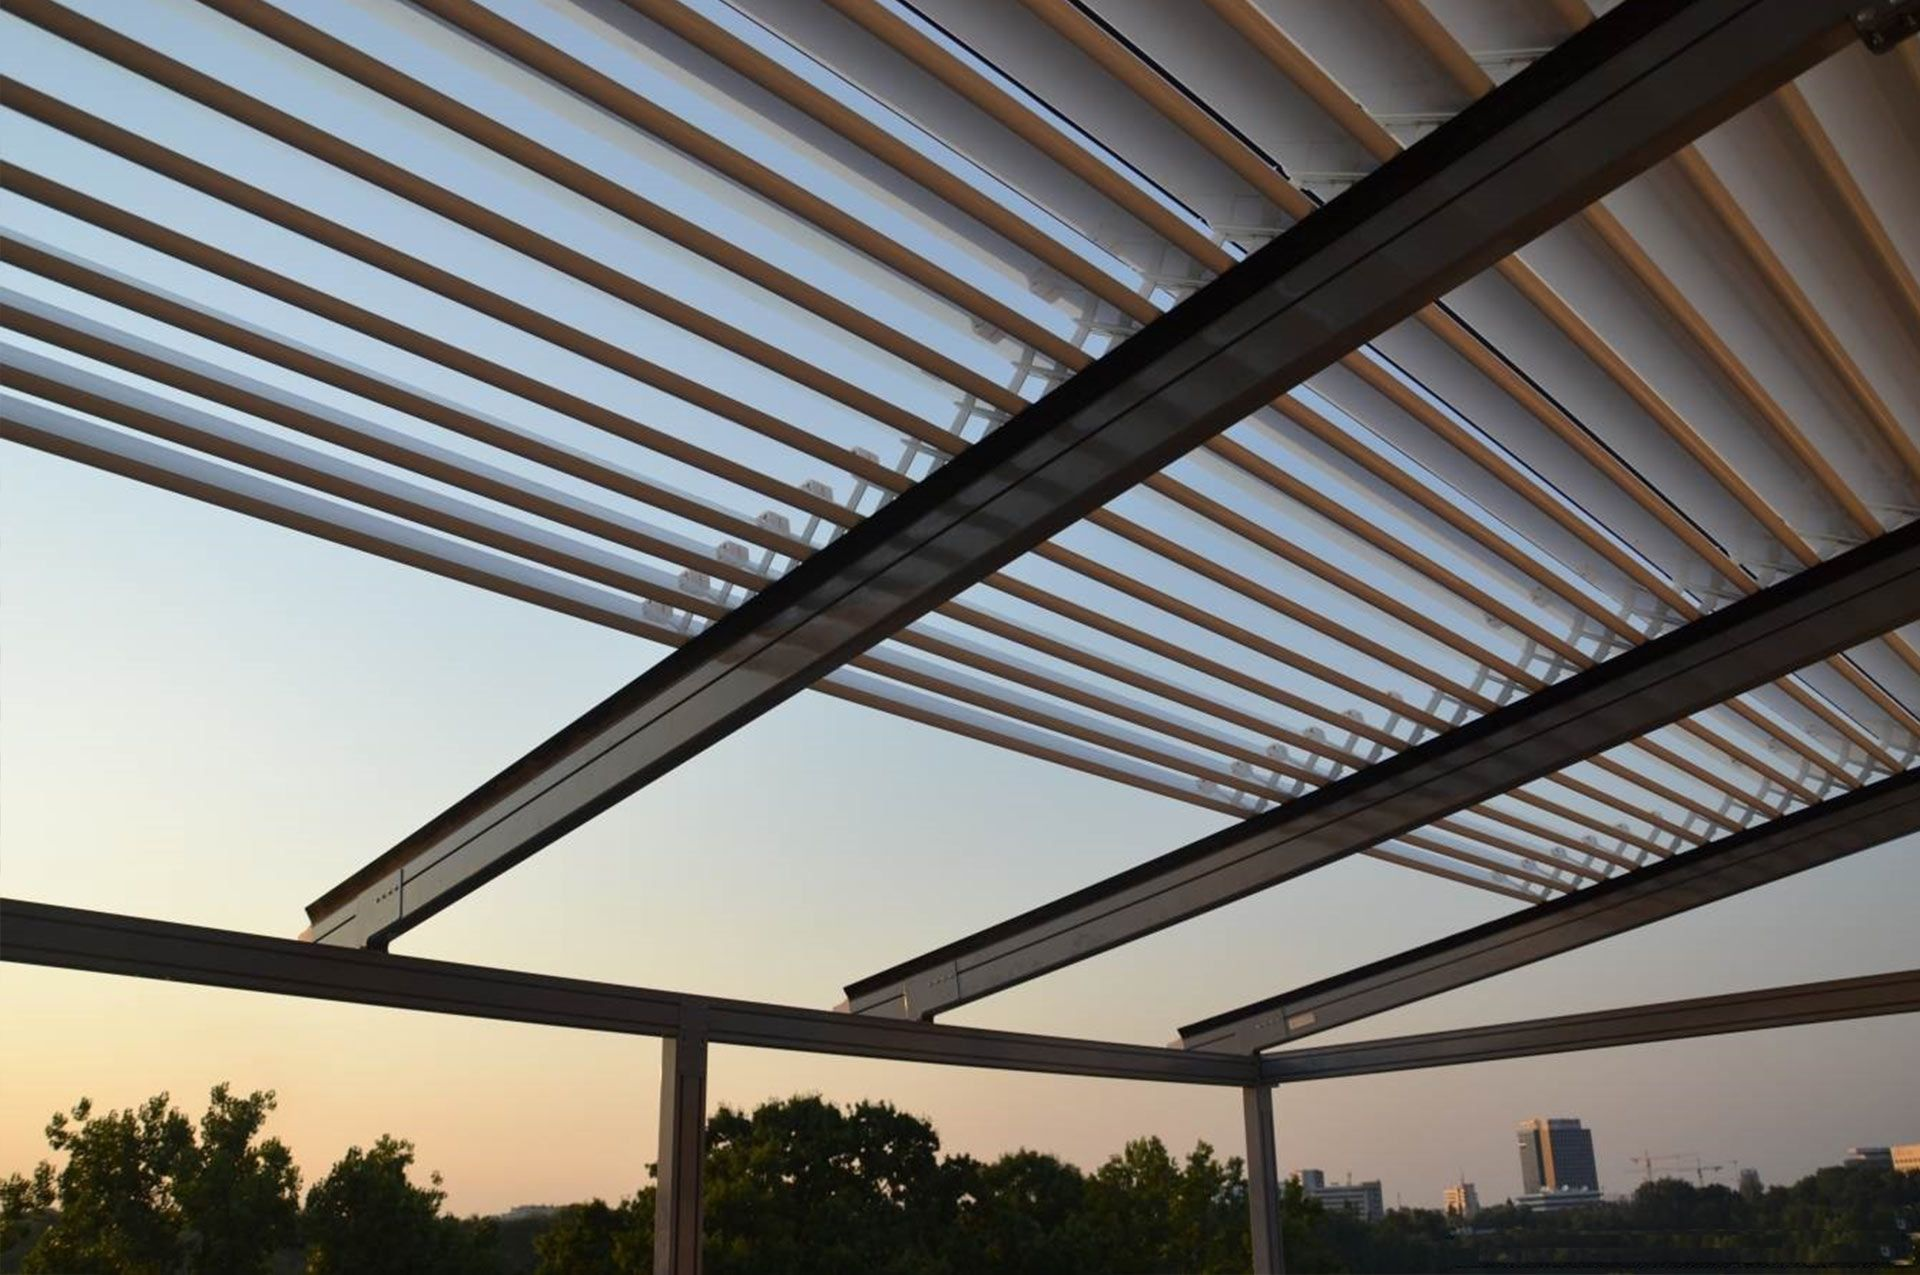 The Eurola Persa Is An Aluminium Louvered Roof System That Retracts Completely